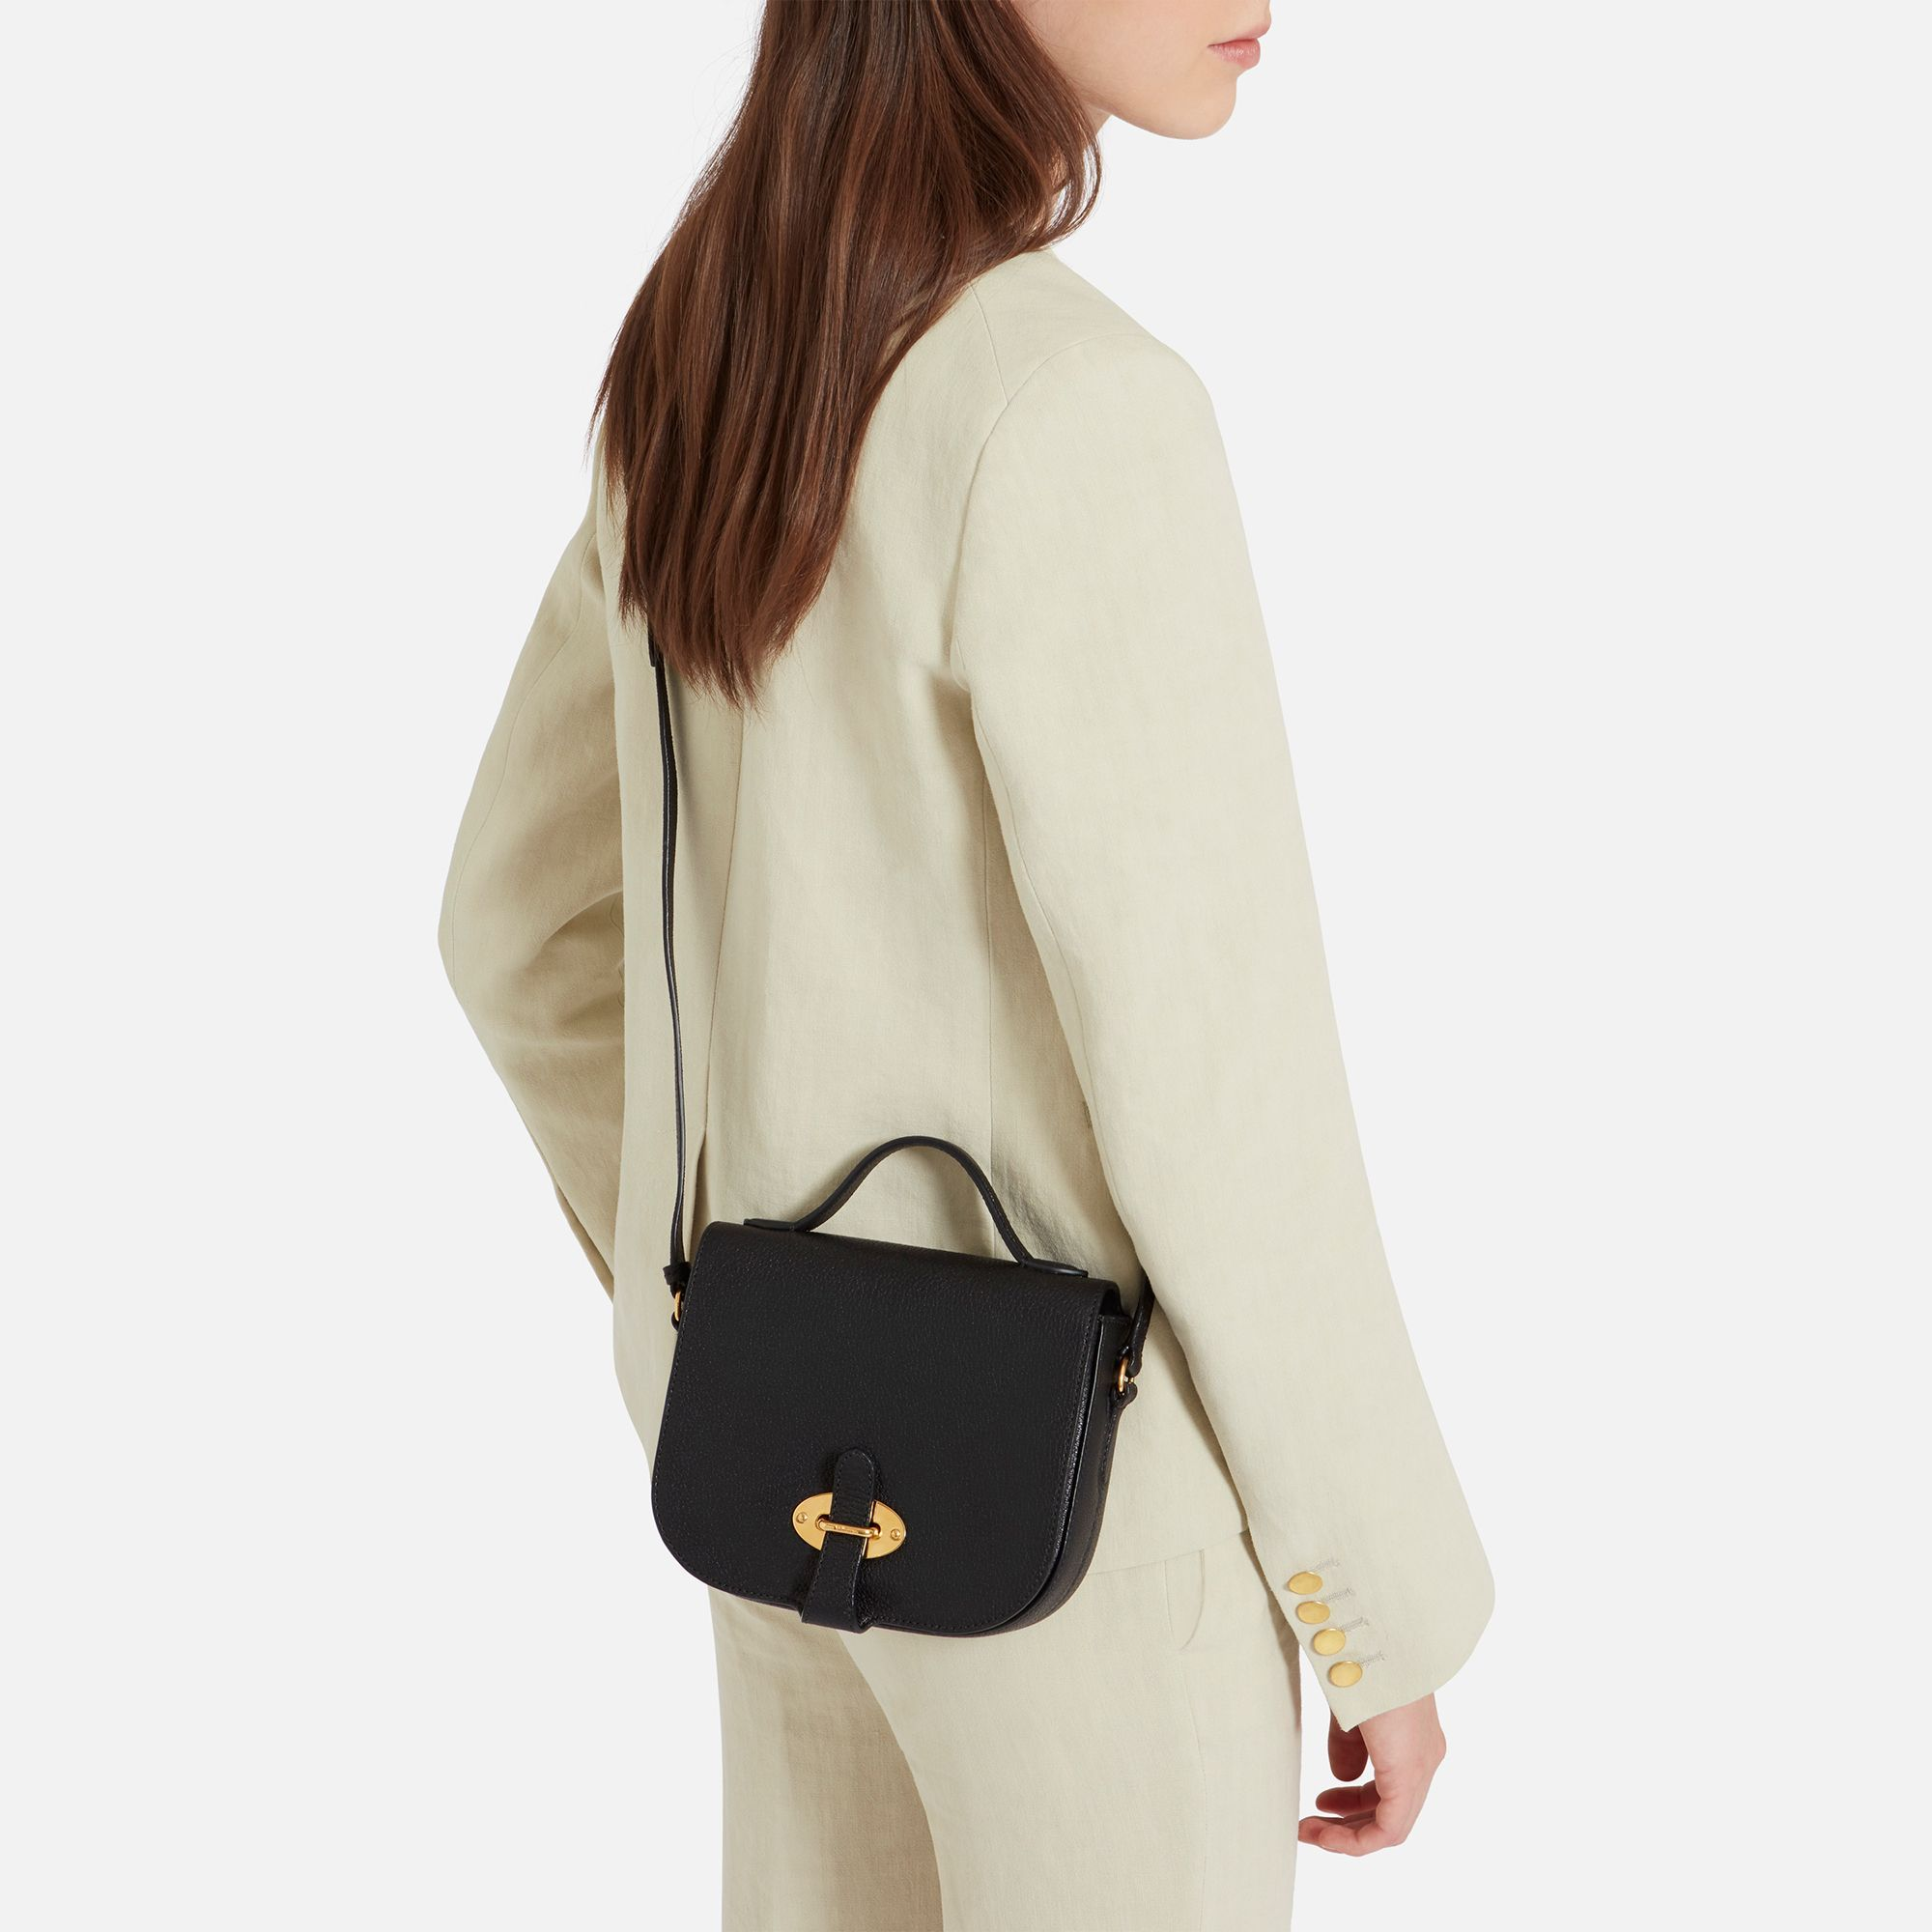 Crossbody Bag. Door Knob. Shop the Small Tenby in Black Leather at  Mulberry.com. The Small Tenby is b913d720e51